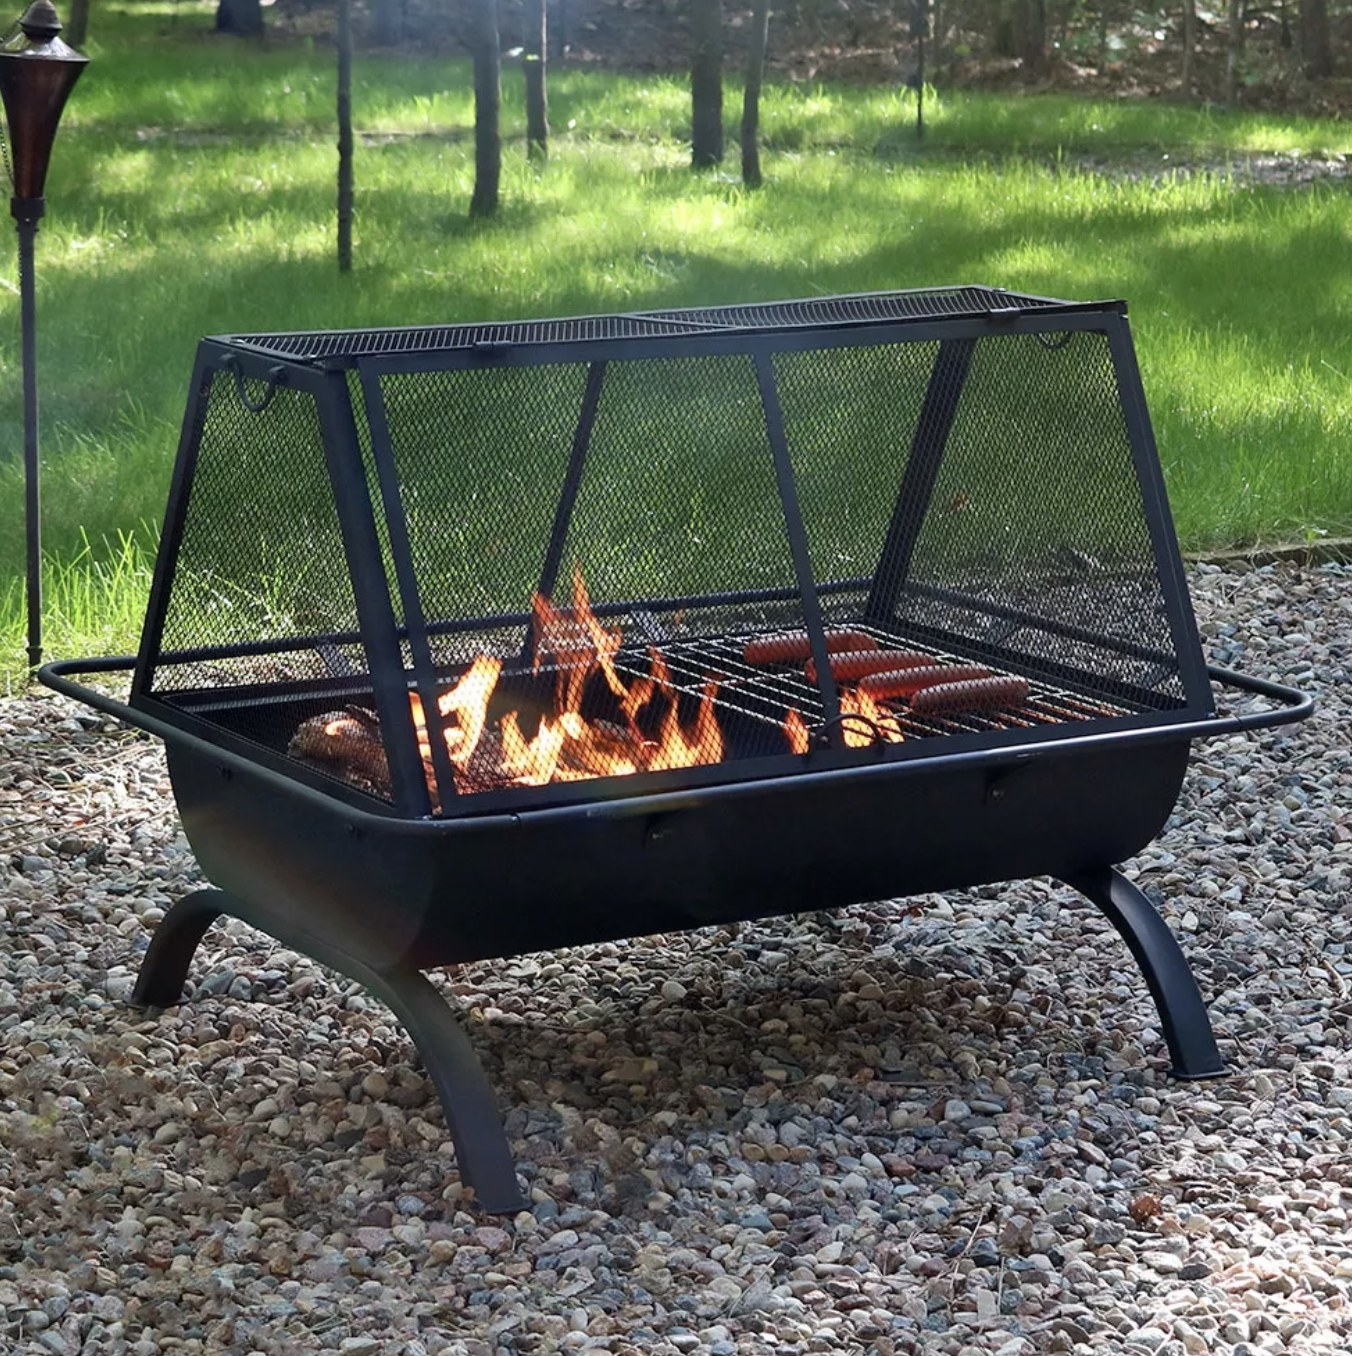 The fire pit with cooking grate on top